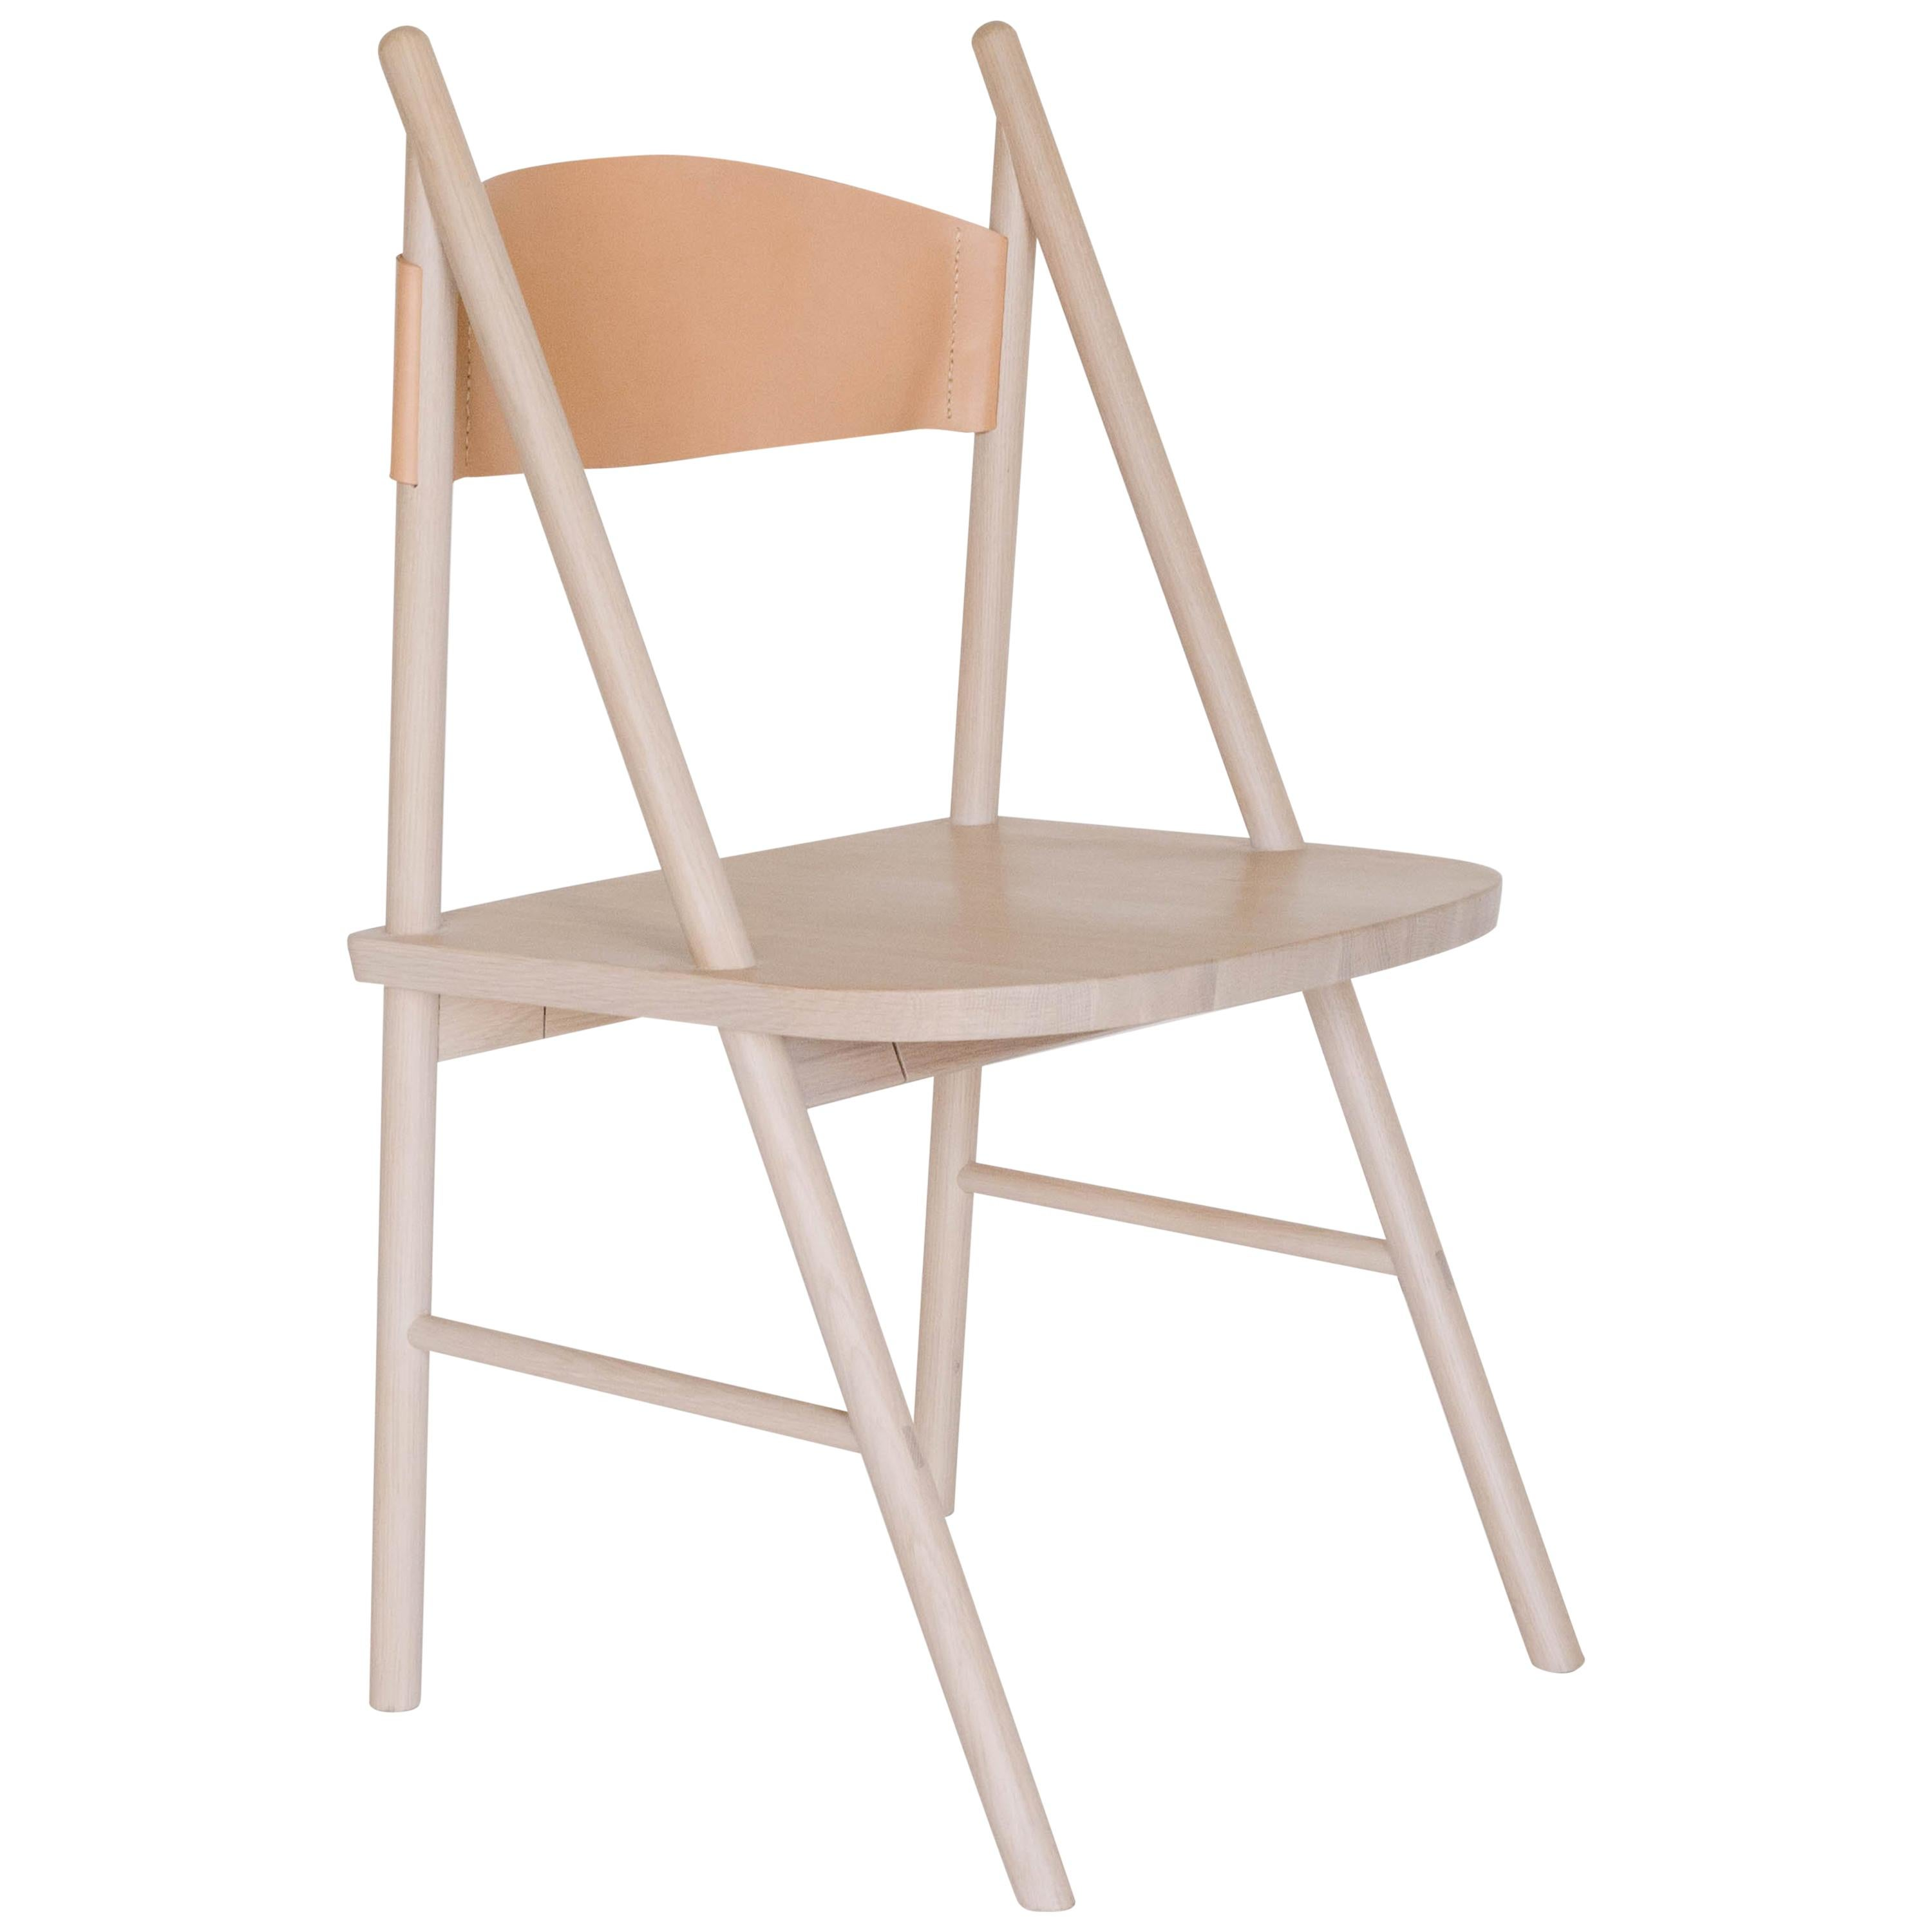 Cress Chair by Sun at Six, Nude Minimalist Side or Dining Chair in Wood, Leather